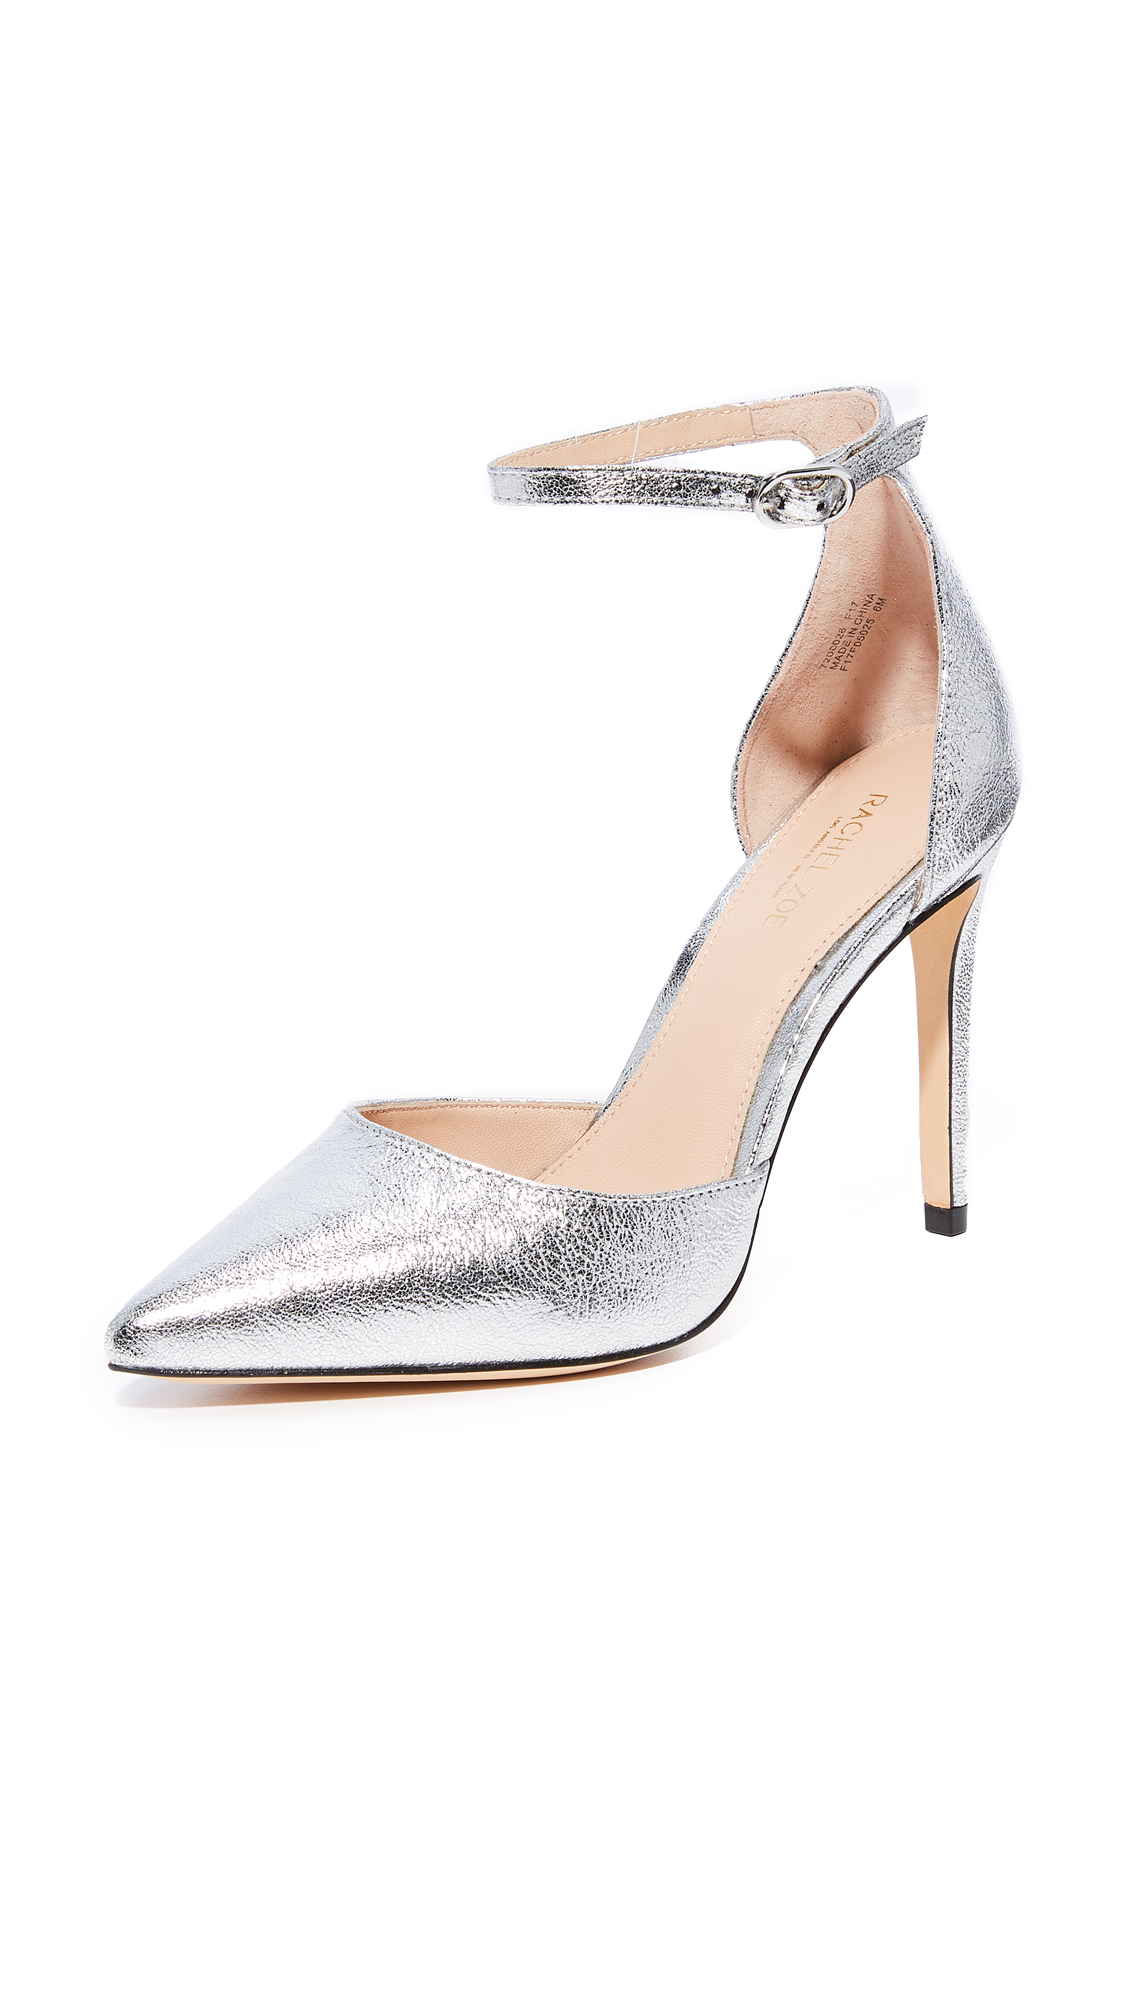 Rachel Zoe Hayworth Ankle Strap Pumps - Silver